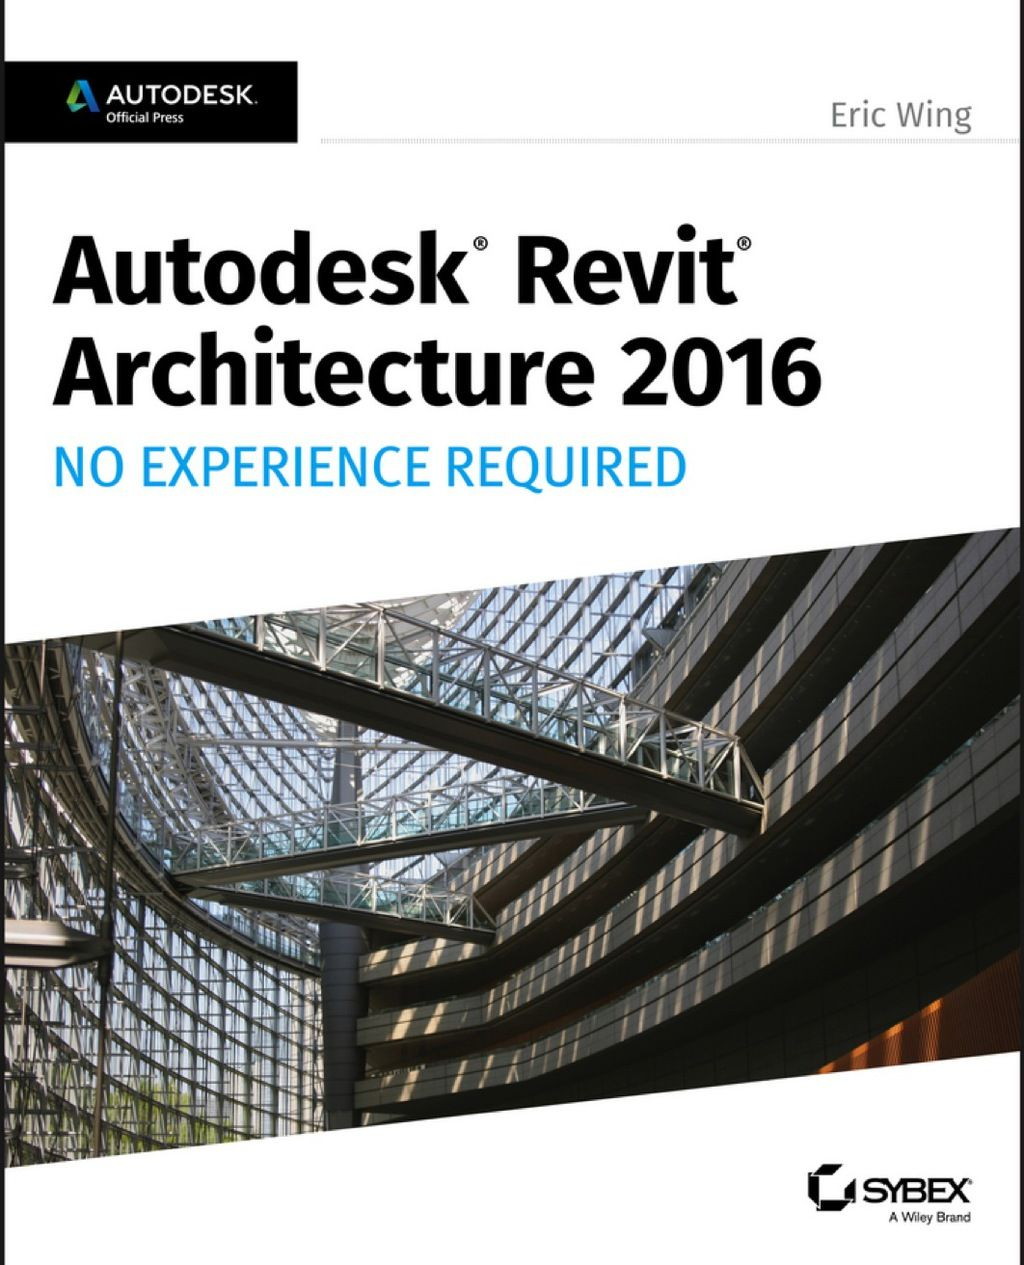 Autodesk Revit Architecture 2016 No Experience Required: Autodesk